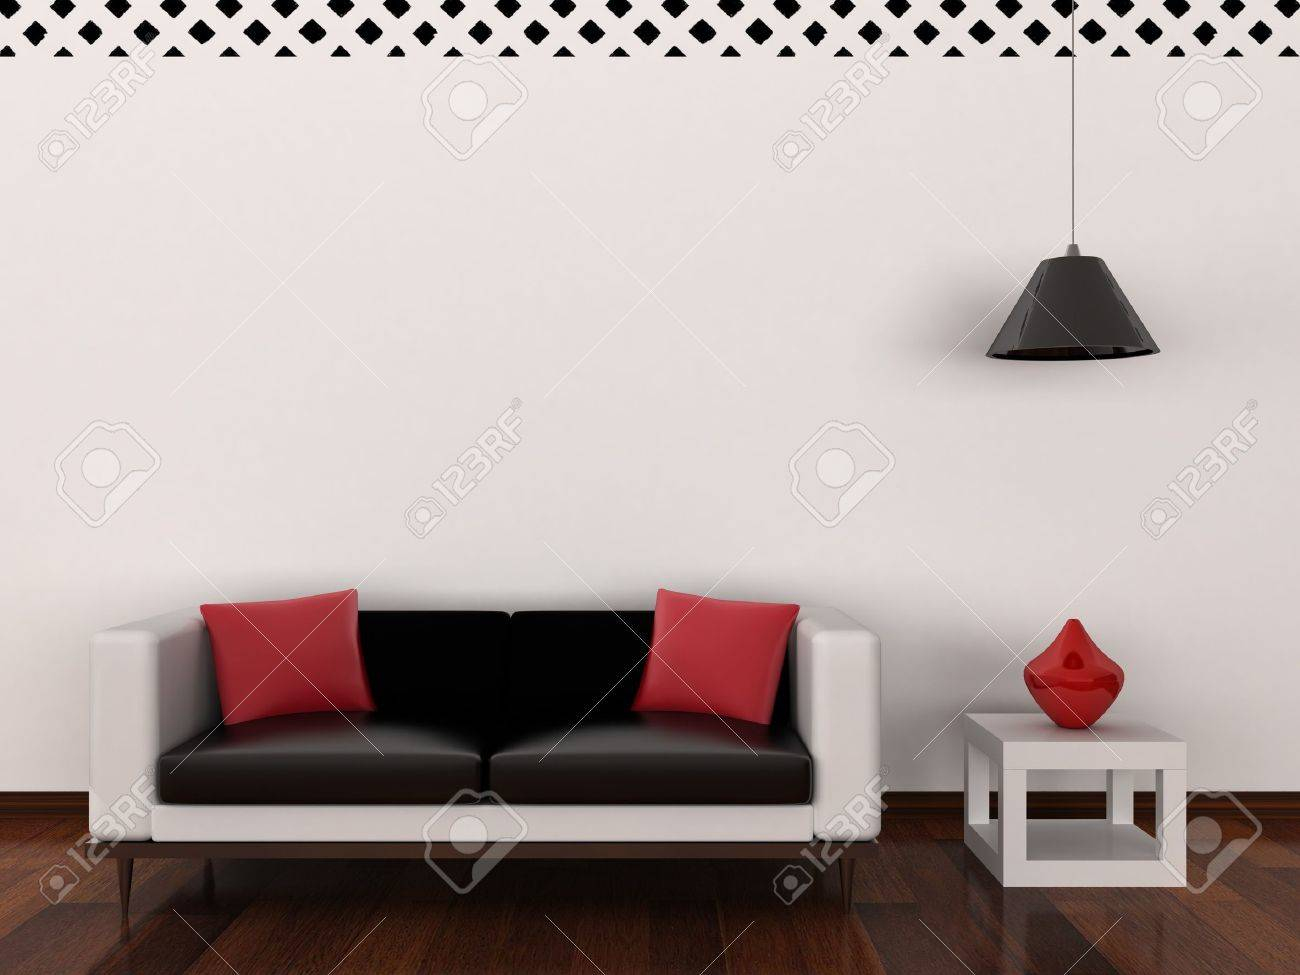 Interior of the modern room Stock Photo - 9870886